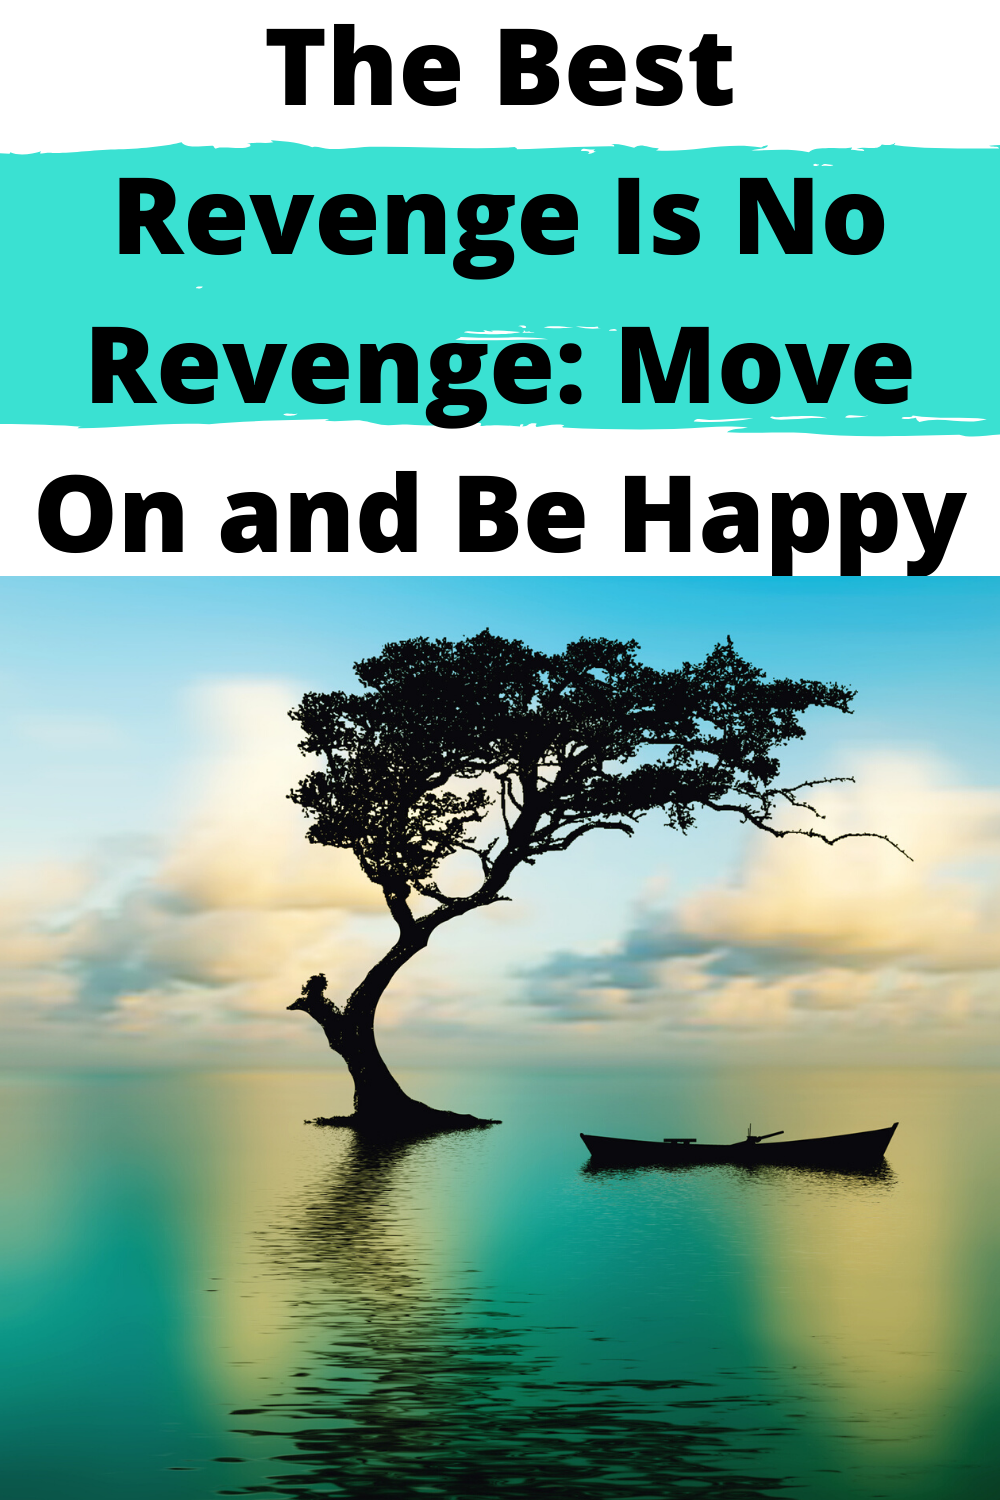 move on and be happy